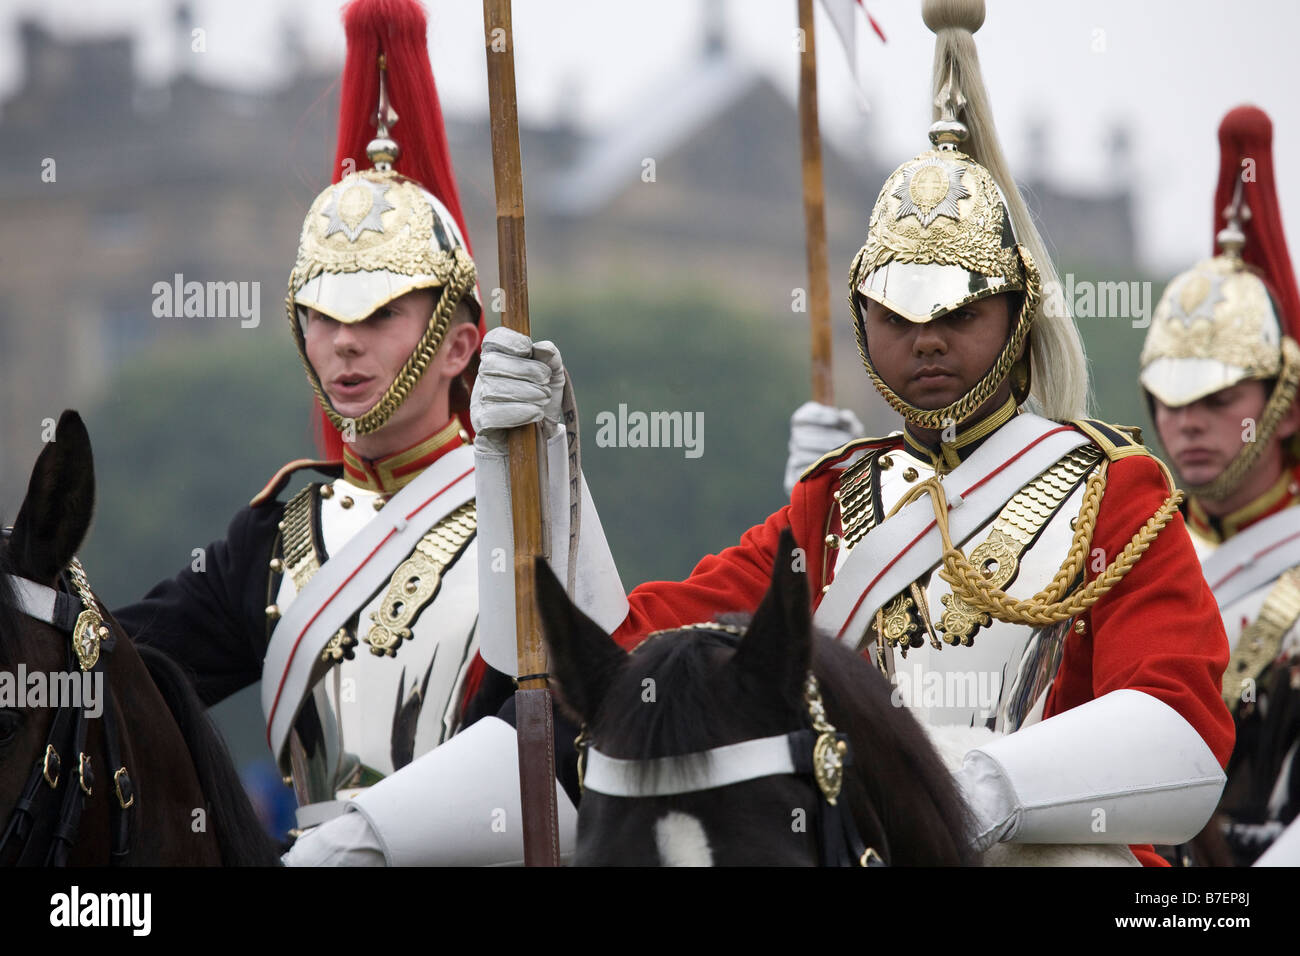 British Mounted Armed Forces, the Musical Ride of the Household Cavalry Regiment display, Chatsworth Country Park, - Stock Image